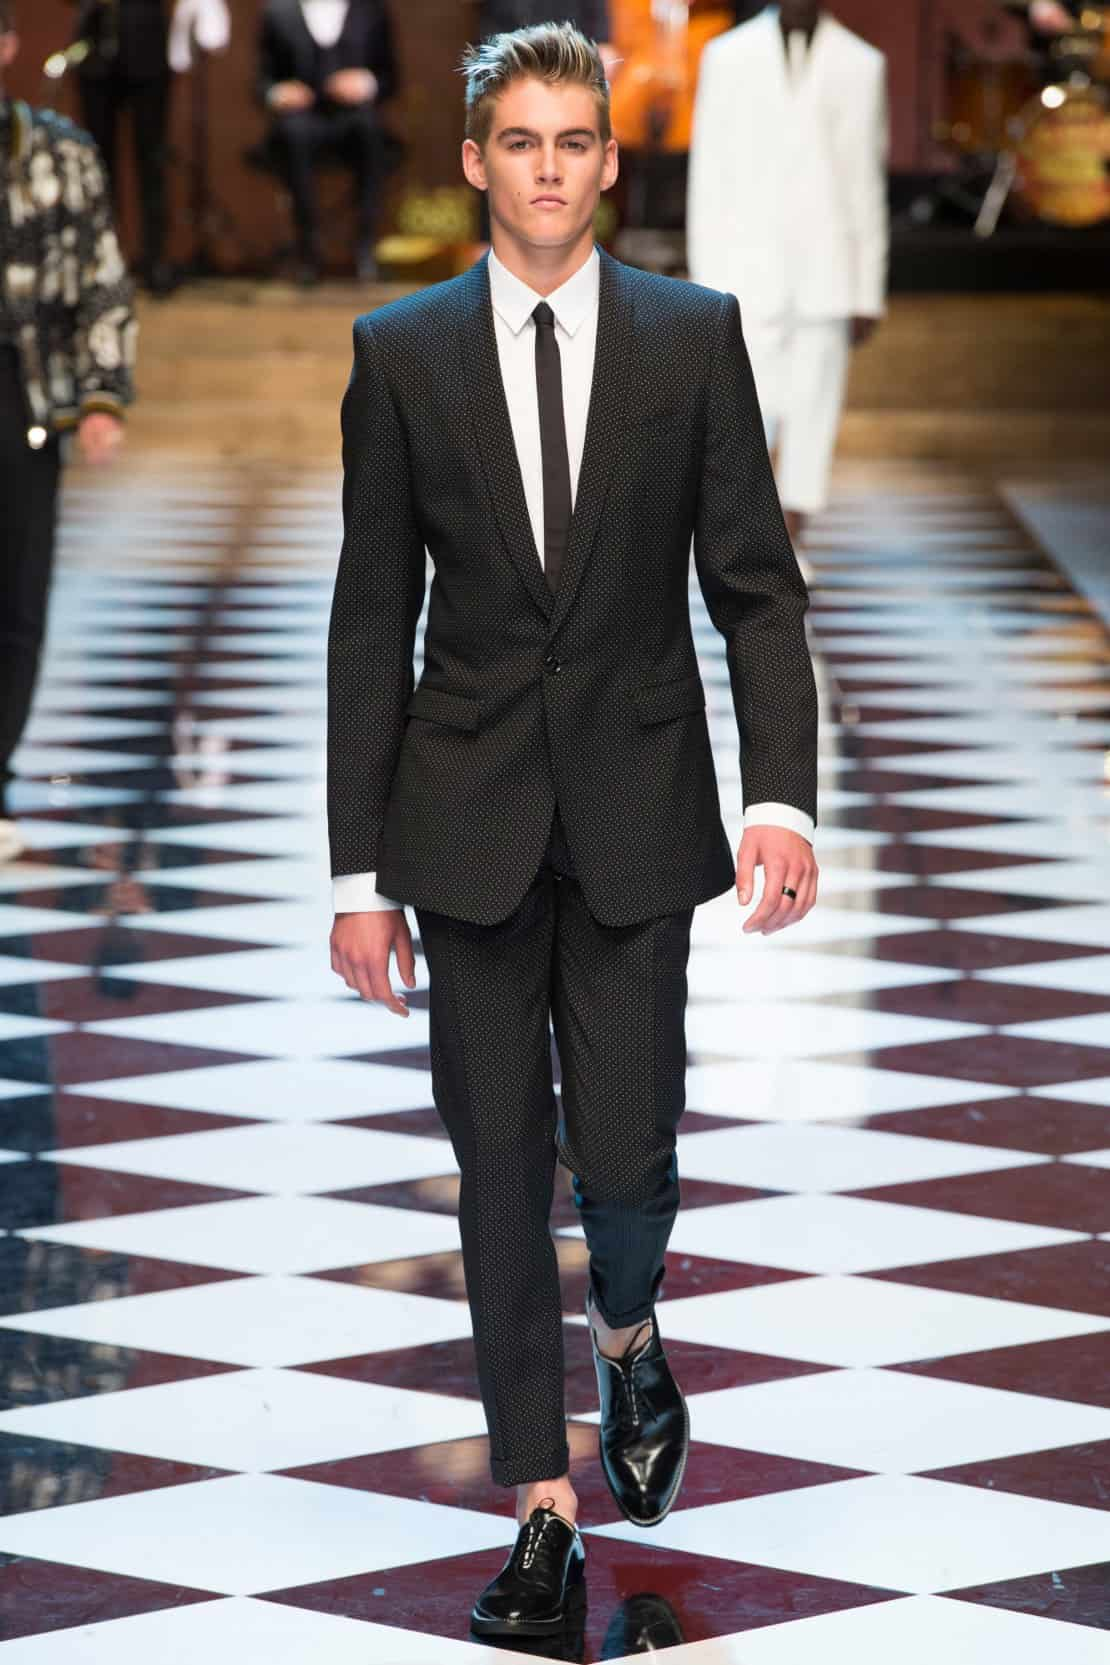 Dolce and Gabbana Menswear Spring Summer 2017 foto 1